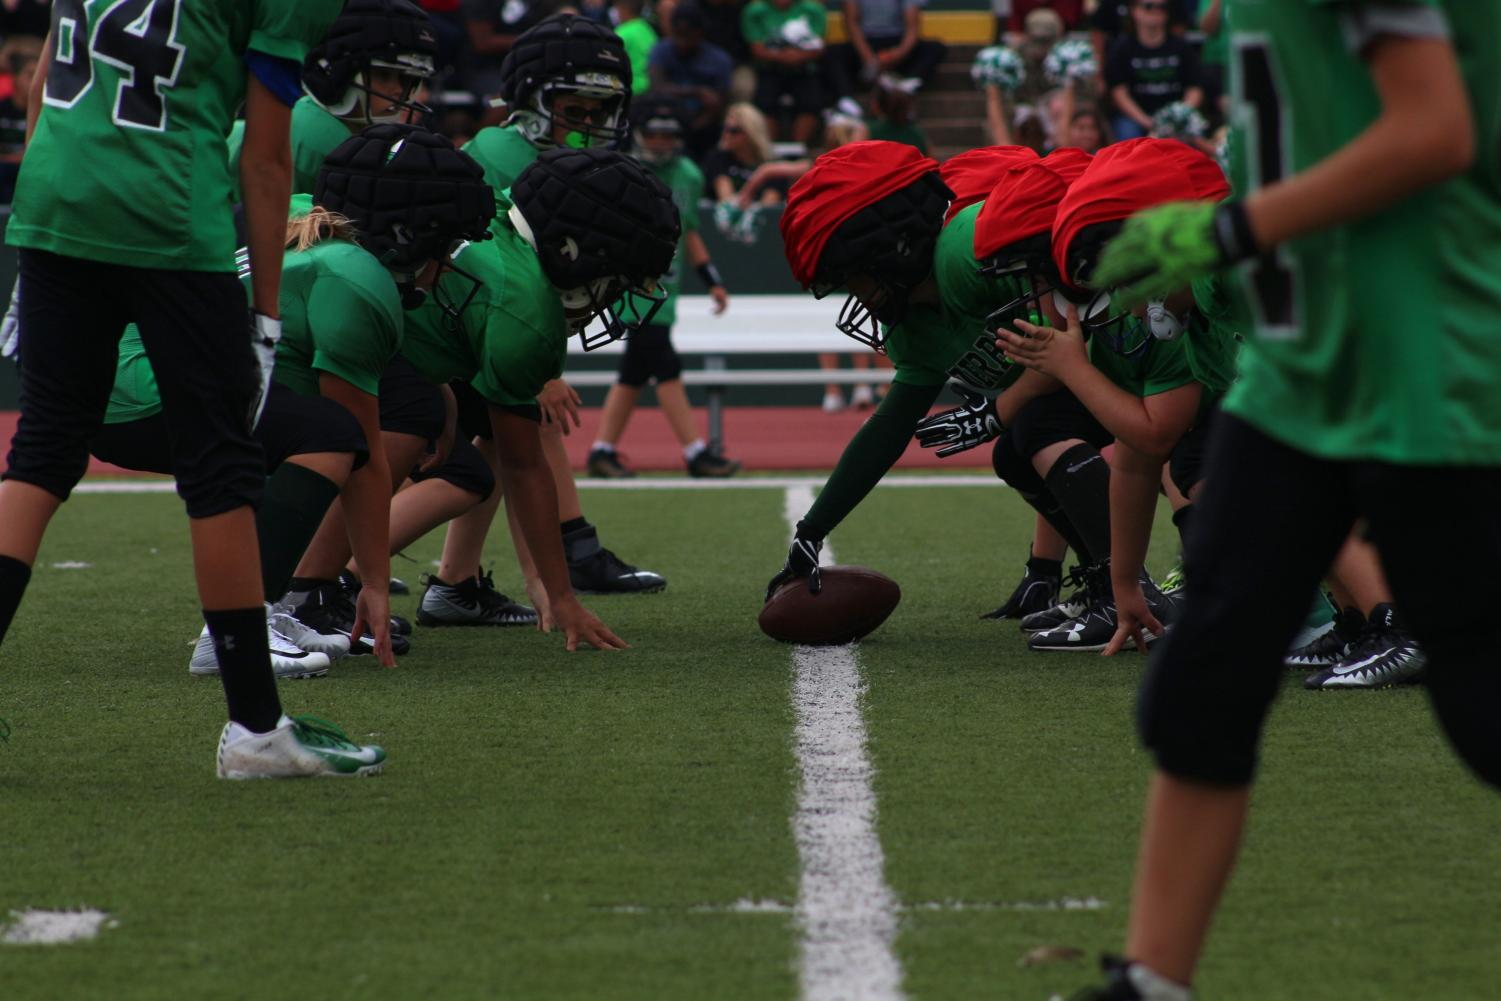 Derby Junior Football Players lining up getting ready to snap the ball.